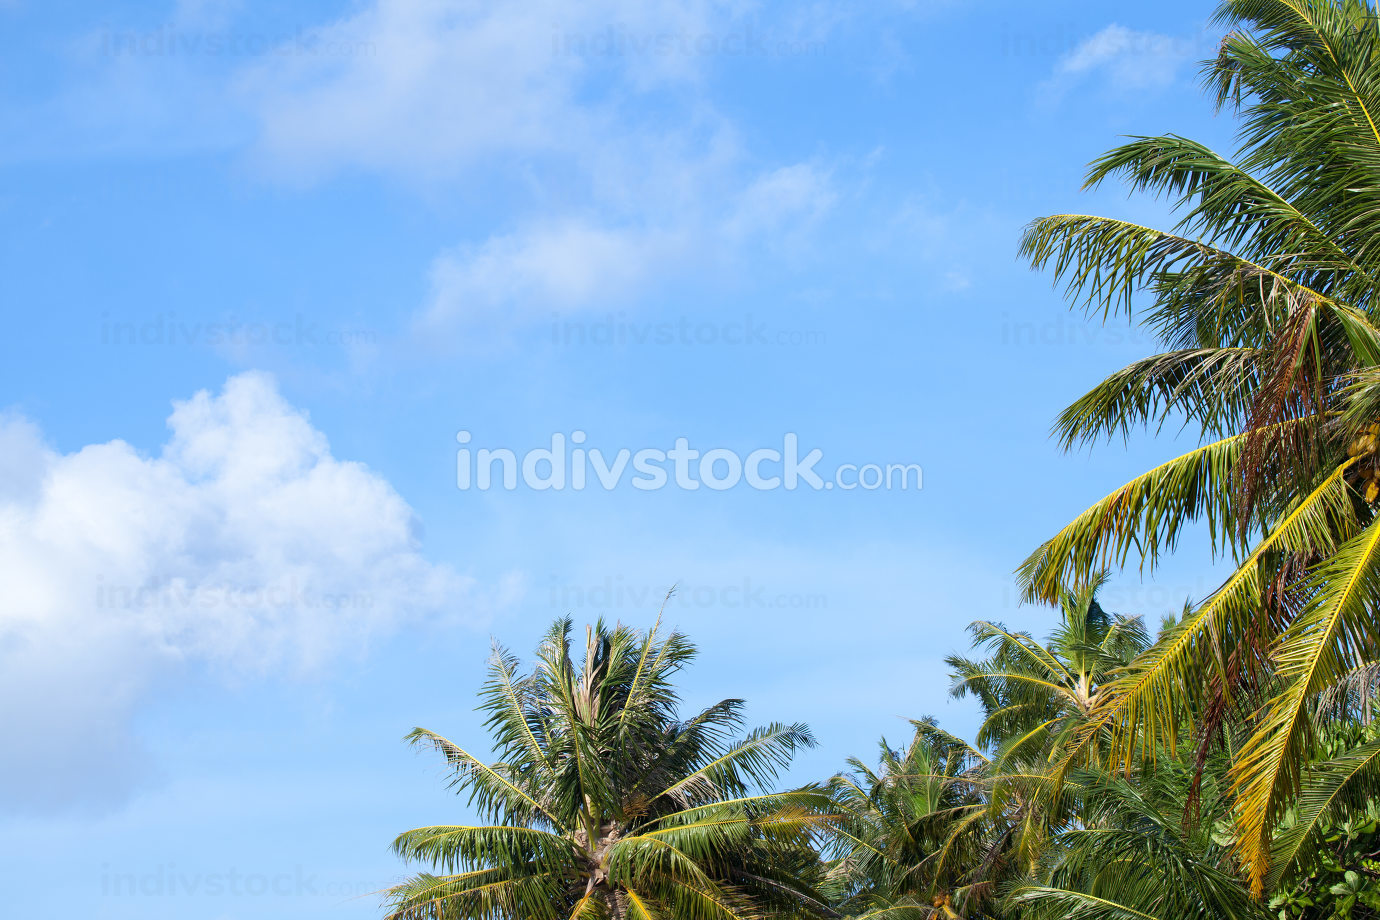 A blue sky with some clouds and a palm trees